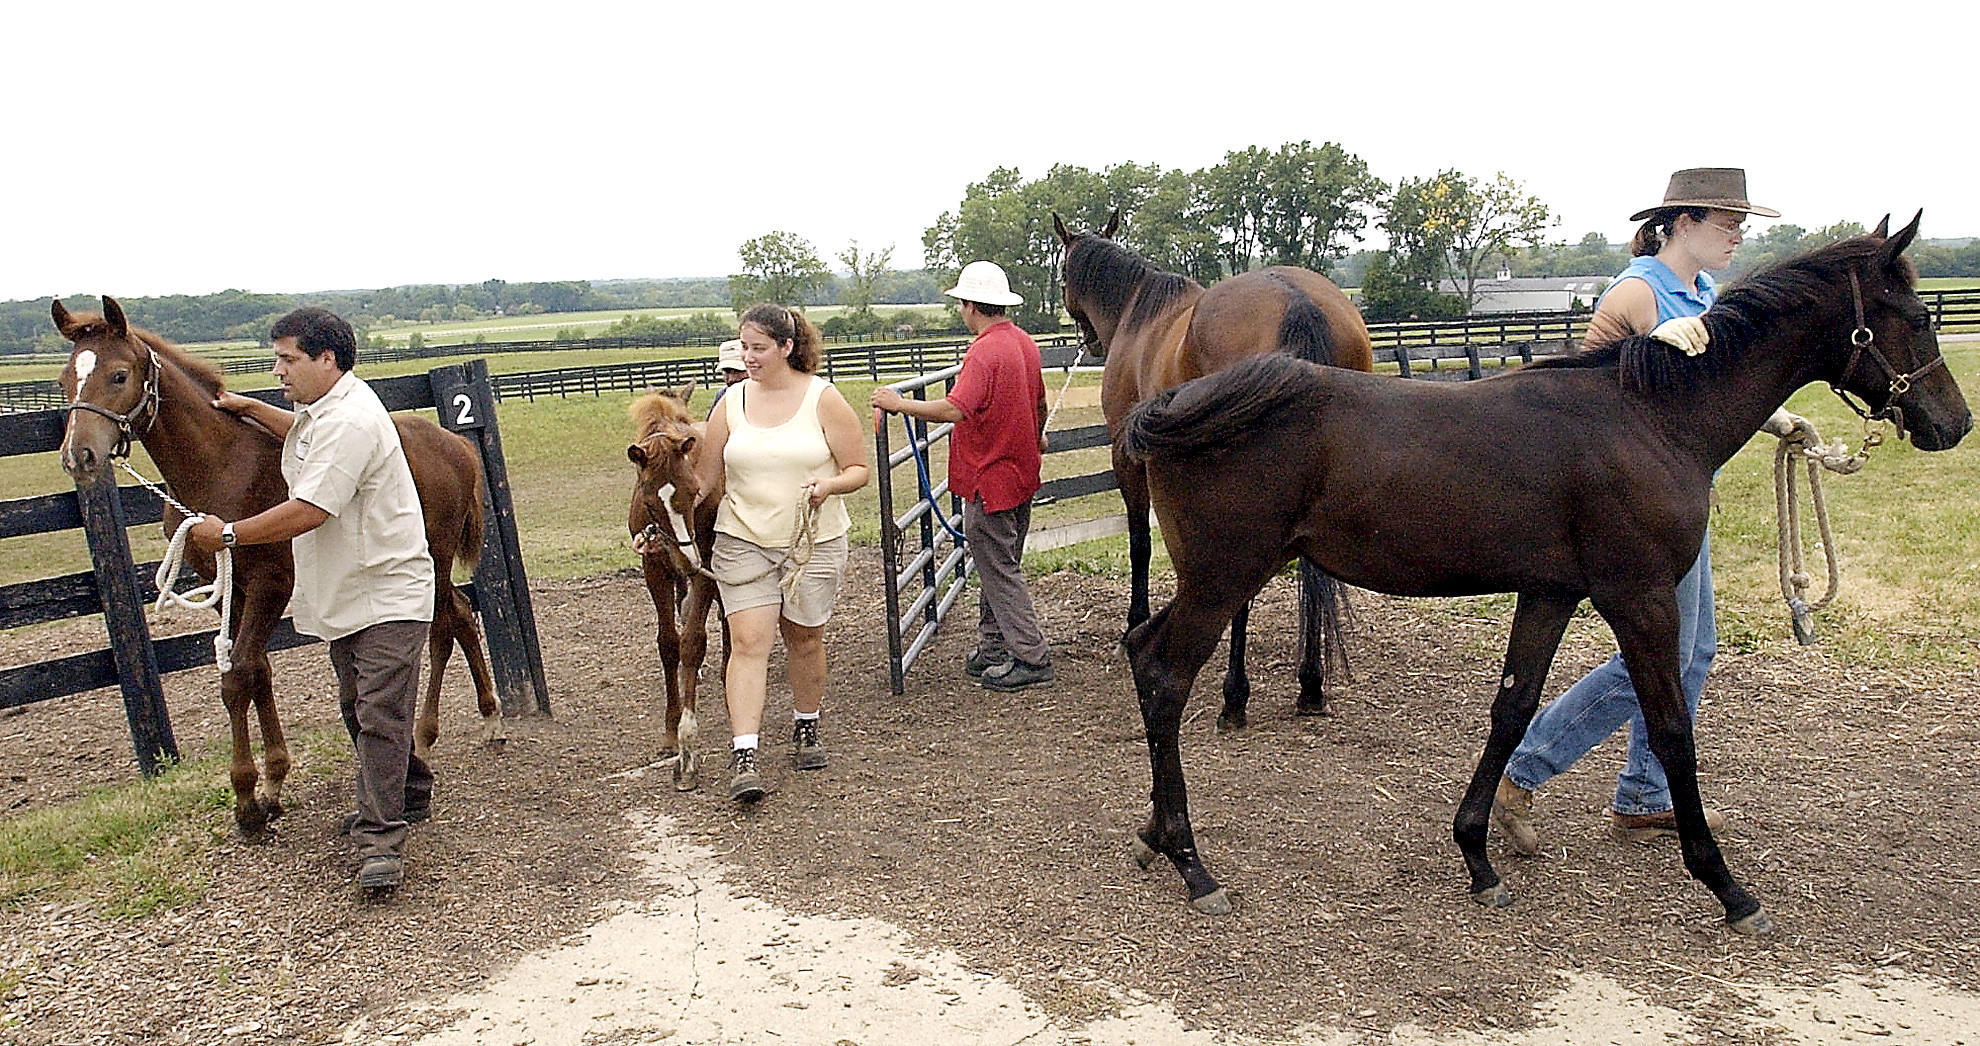 Workers lead the horses in from the fields at Horizon Farms in Barrington Hills, which was discontinuing its boarding operations in 2013.